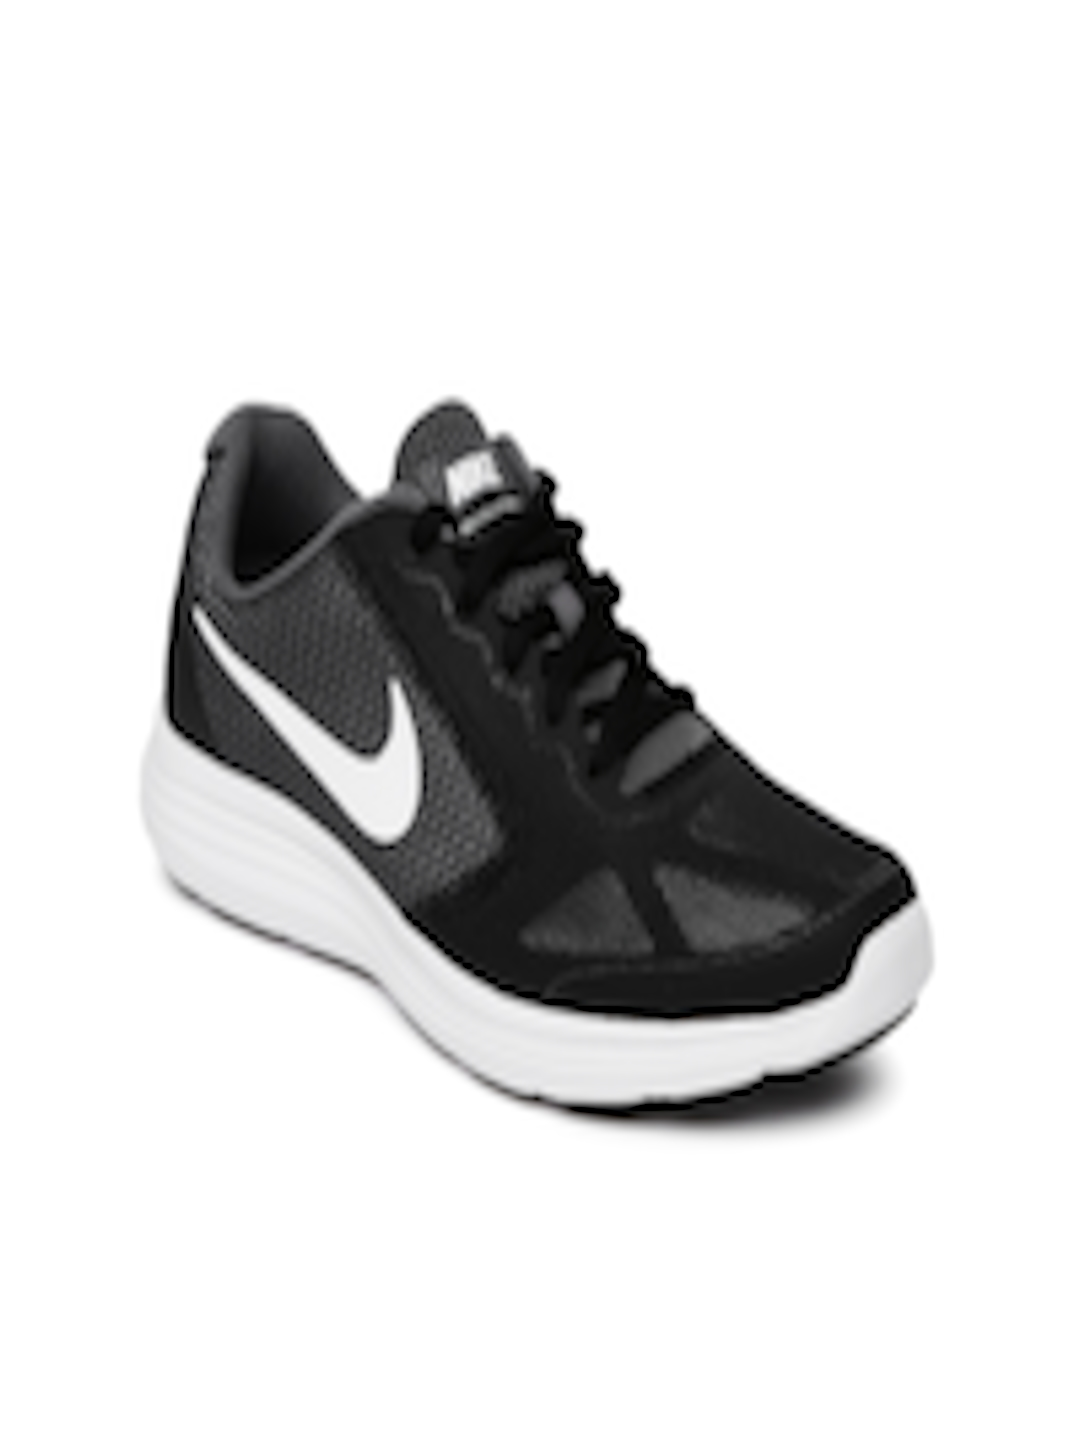 new arrival f4e20 f2687 Buy Nike Boys Charcoal Grey  Black Revolution 3 (GS) Running Shoes - Sports  Shoes for Boys 1756796  Myntra